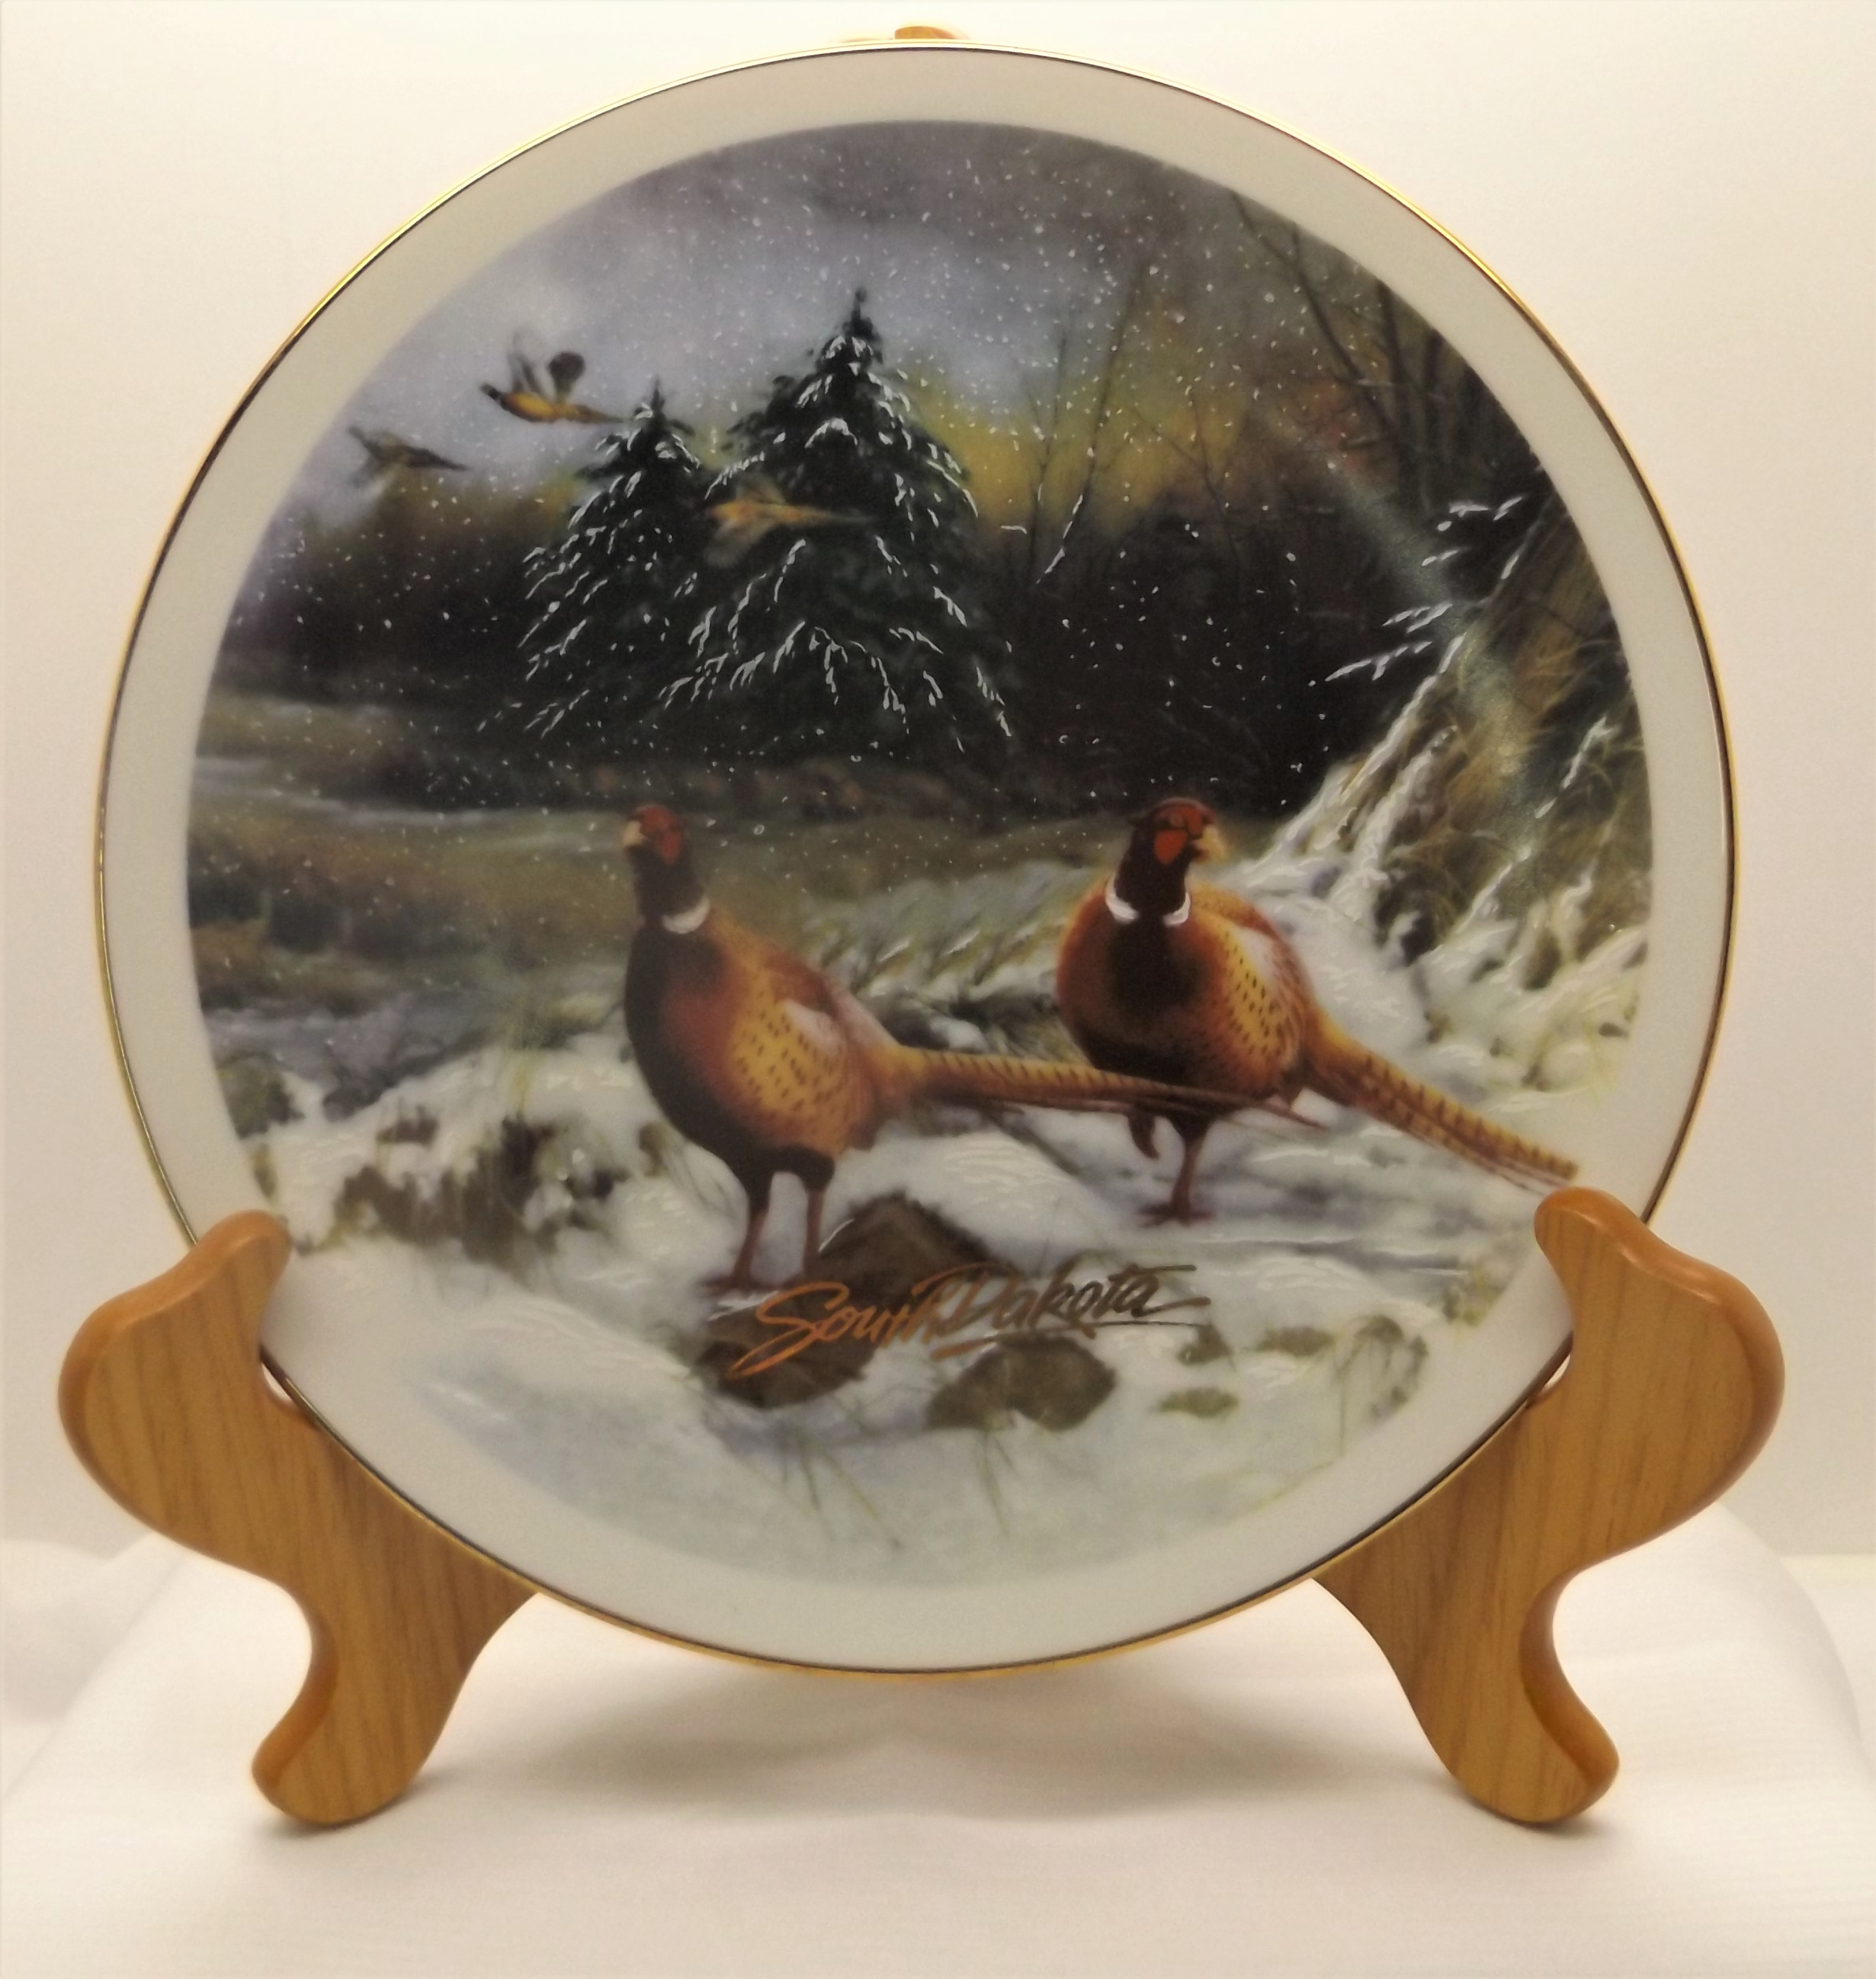 South Dakota Pheasant Plate